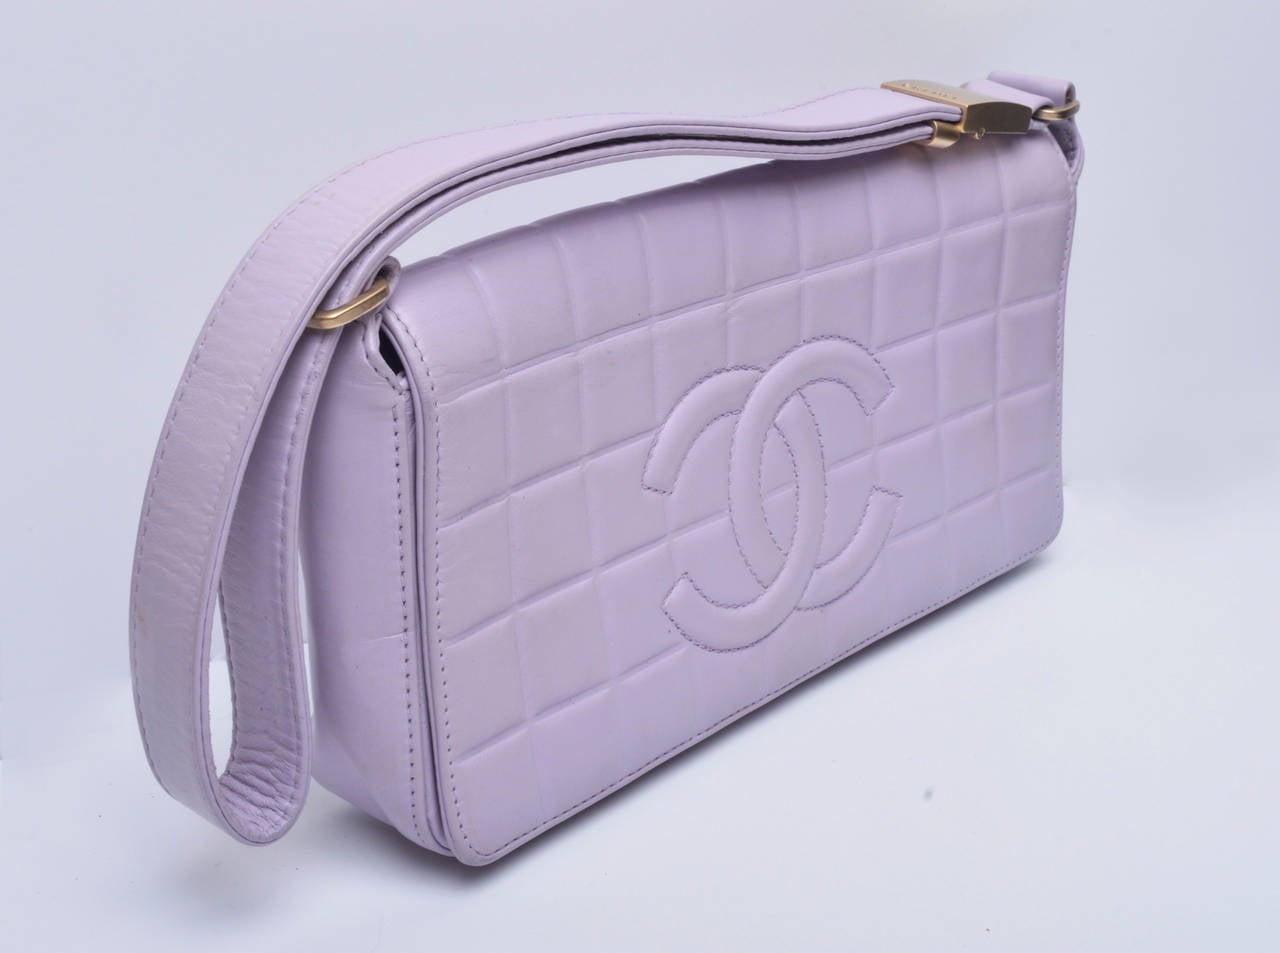 Gorgeous authentic Chanel quilted purse. Lovely muted lilac color. Leather. Gold hardware.  Adjustable shoulder strap. Stamped clasp. Refurbished by Chanel (receipt from Chanel included). Magnet closure.